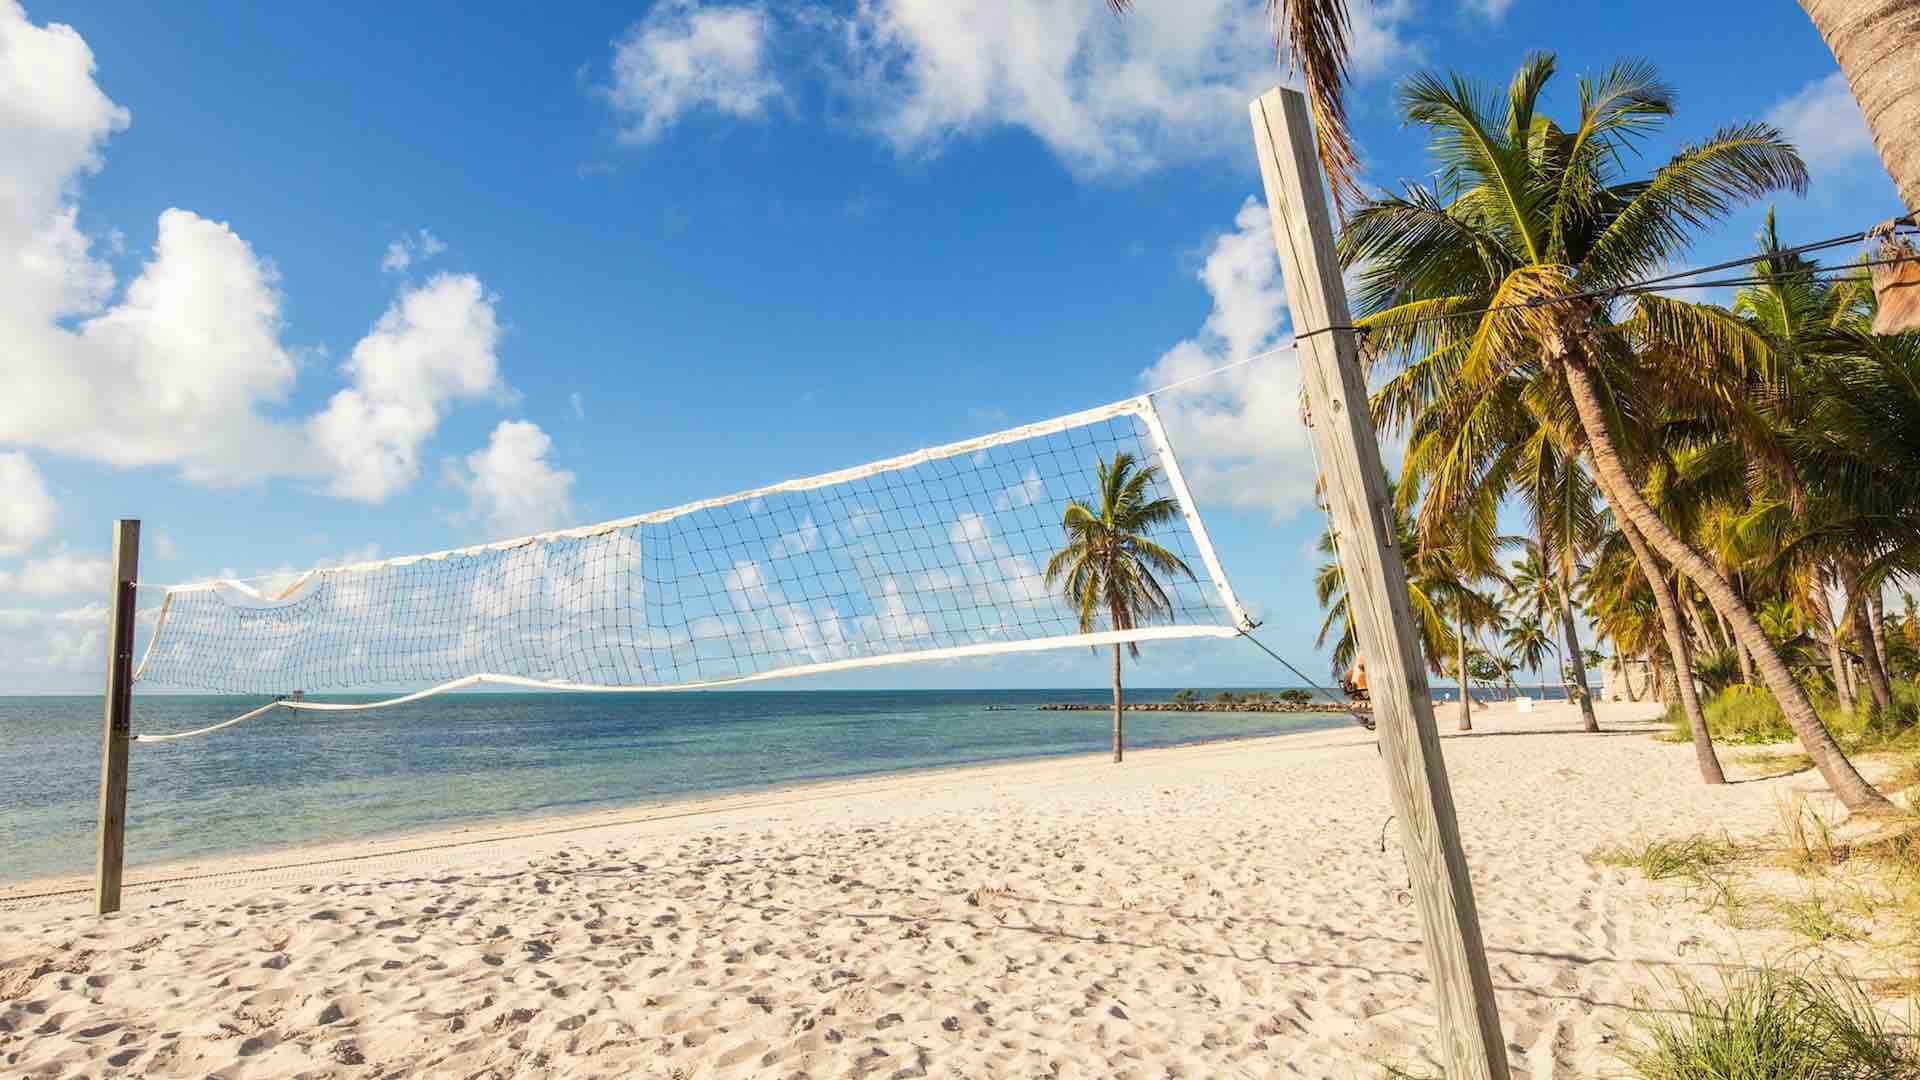 Smathers beach has volleyball nets and other fun activities...